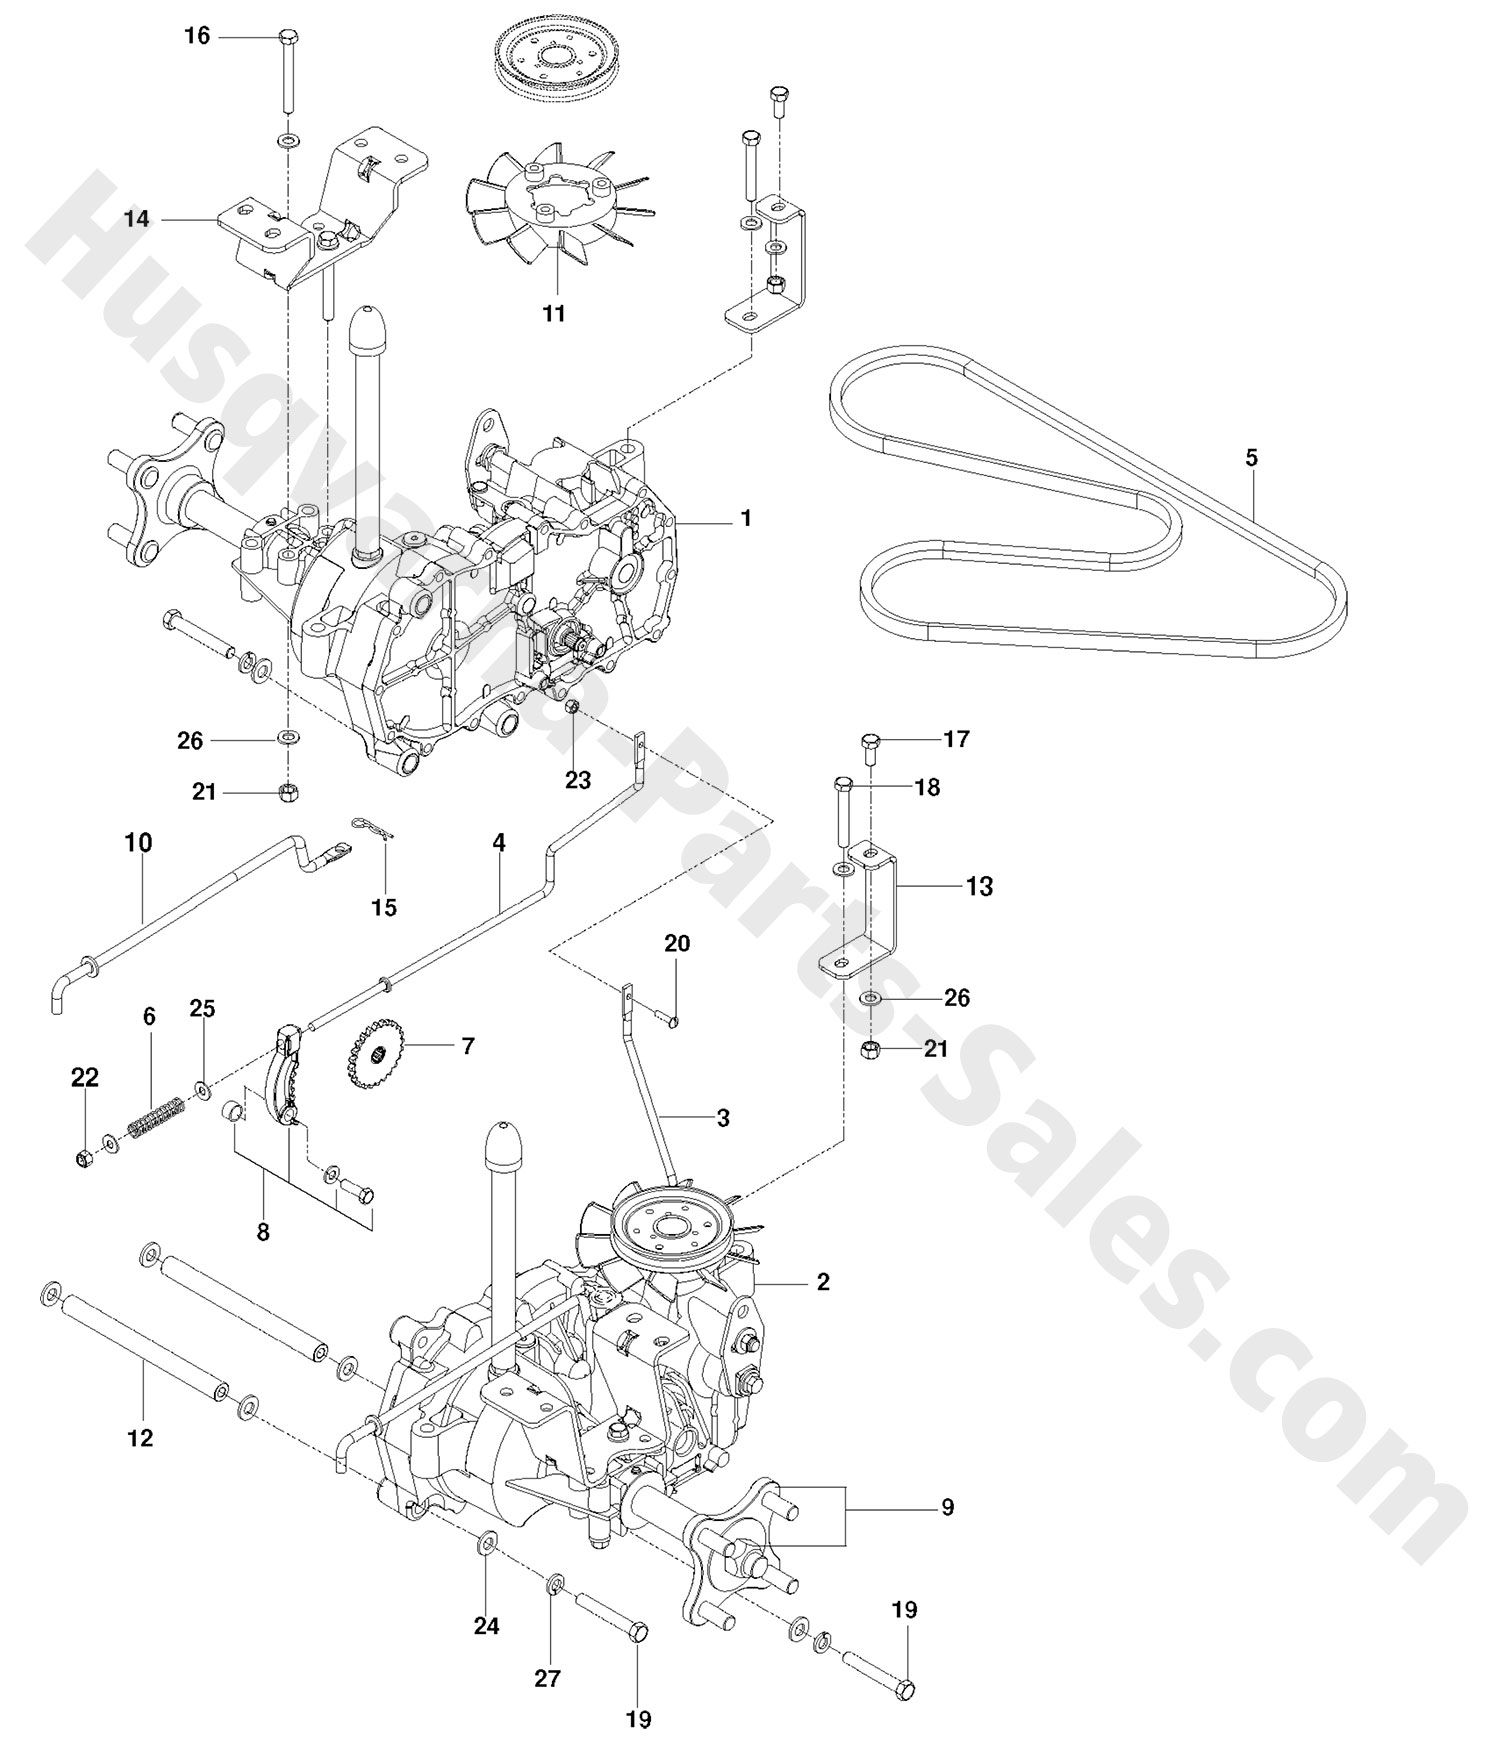 Husqvarna Ztr Wiring Diagram Electrical Diagrams Ossa Rz 5424 Trusted